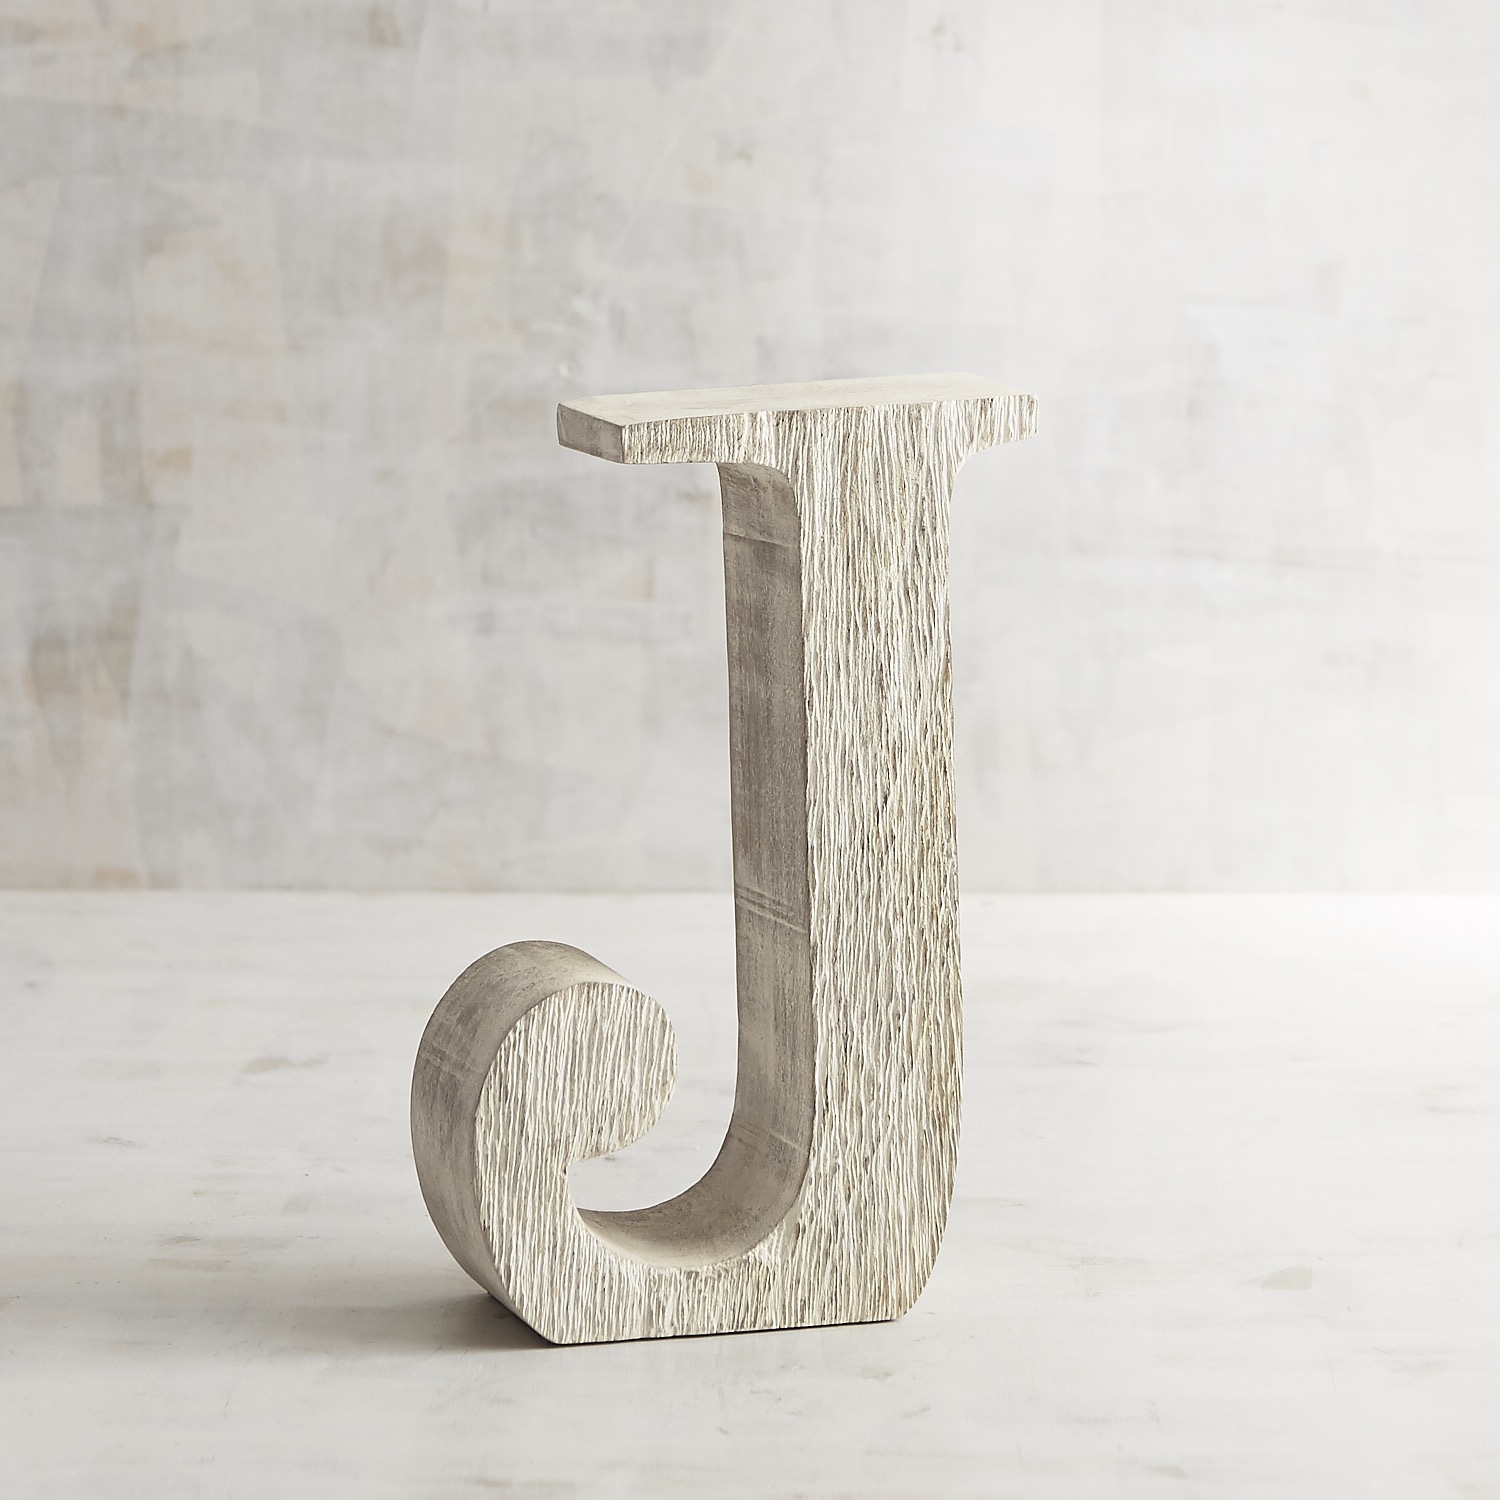 Whitewashed Wooden Monogram Letter J